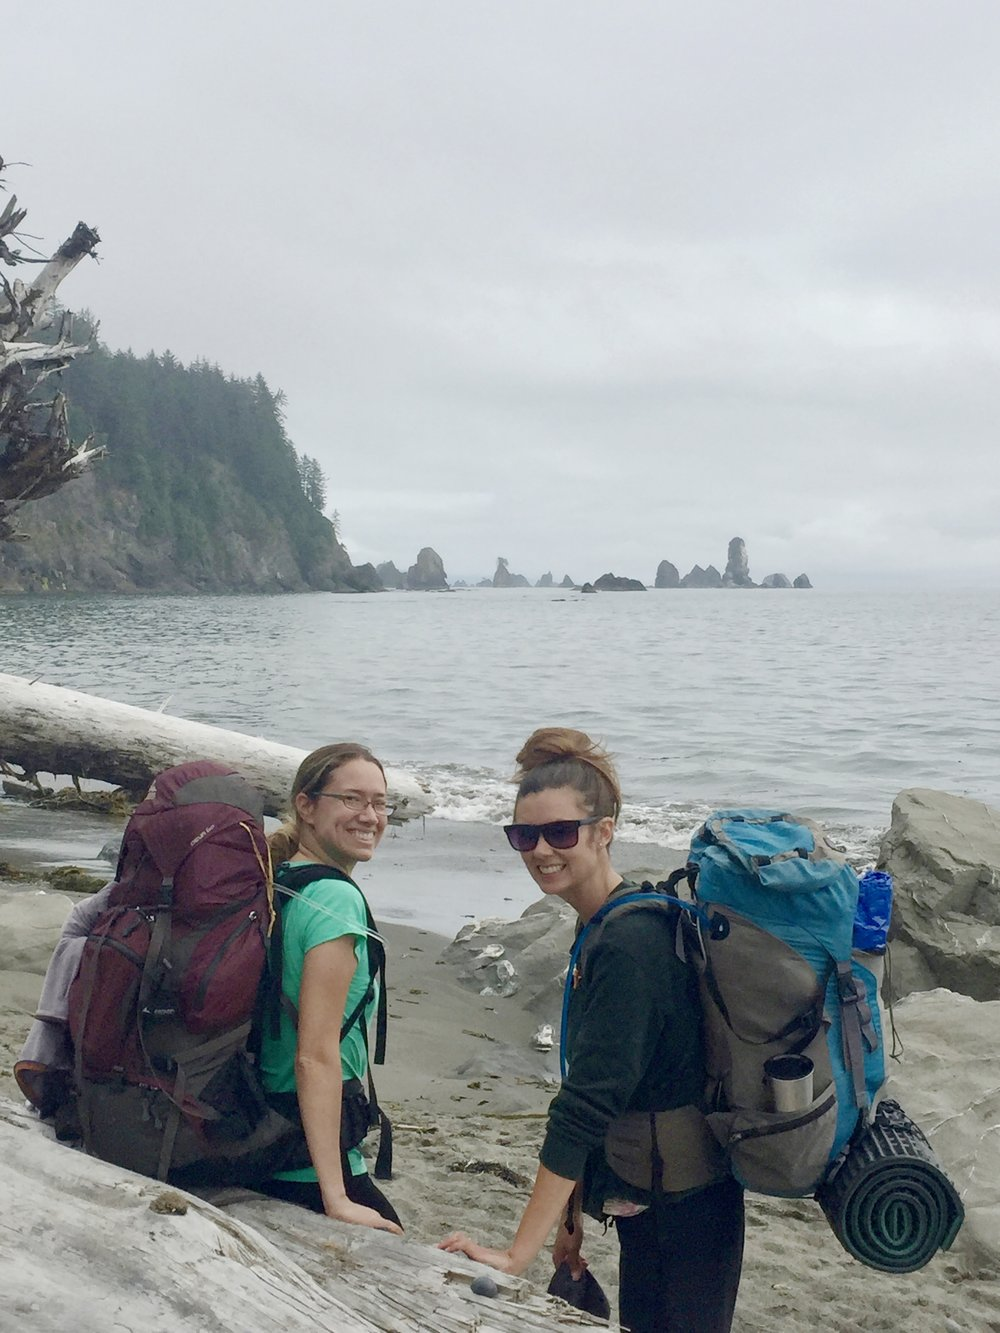 Erin (right) and I just had another laid-back adventure backpacking down the Olympic Coast this summer.